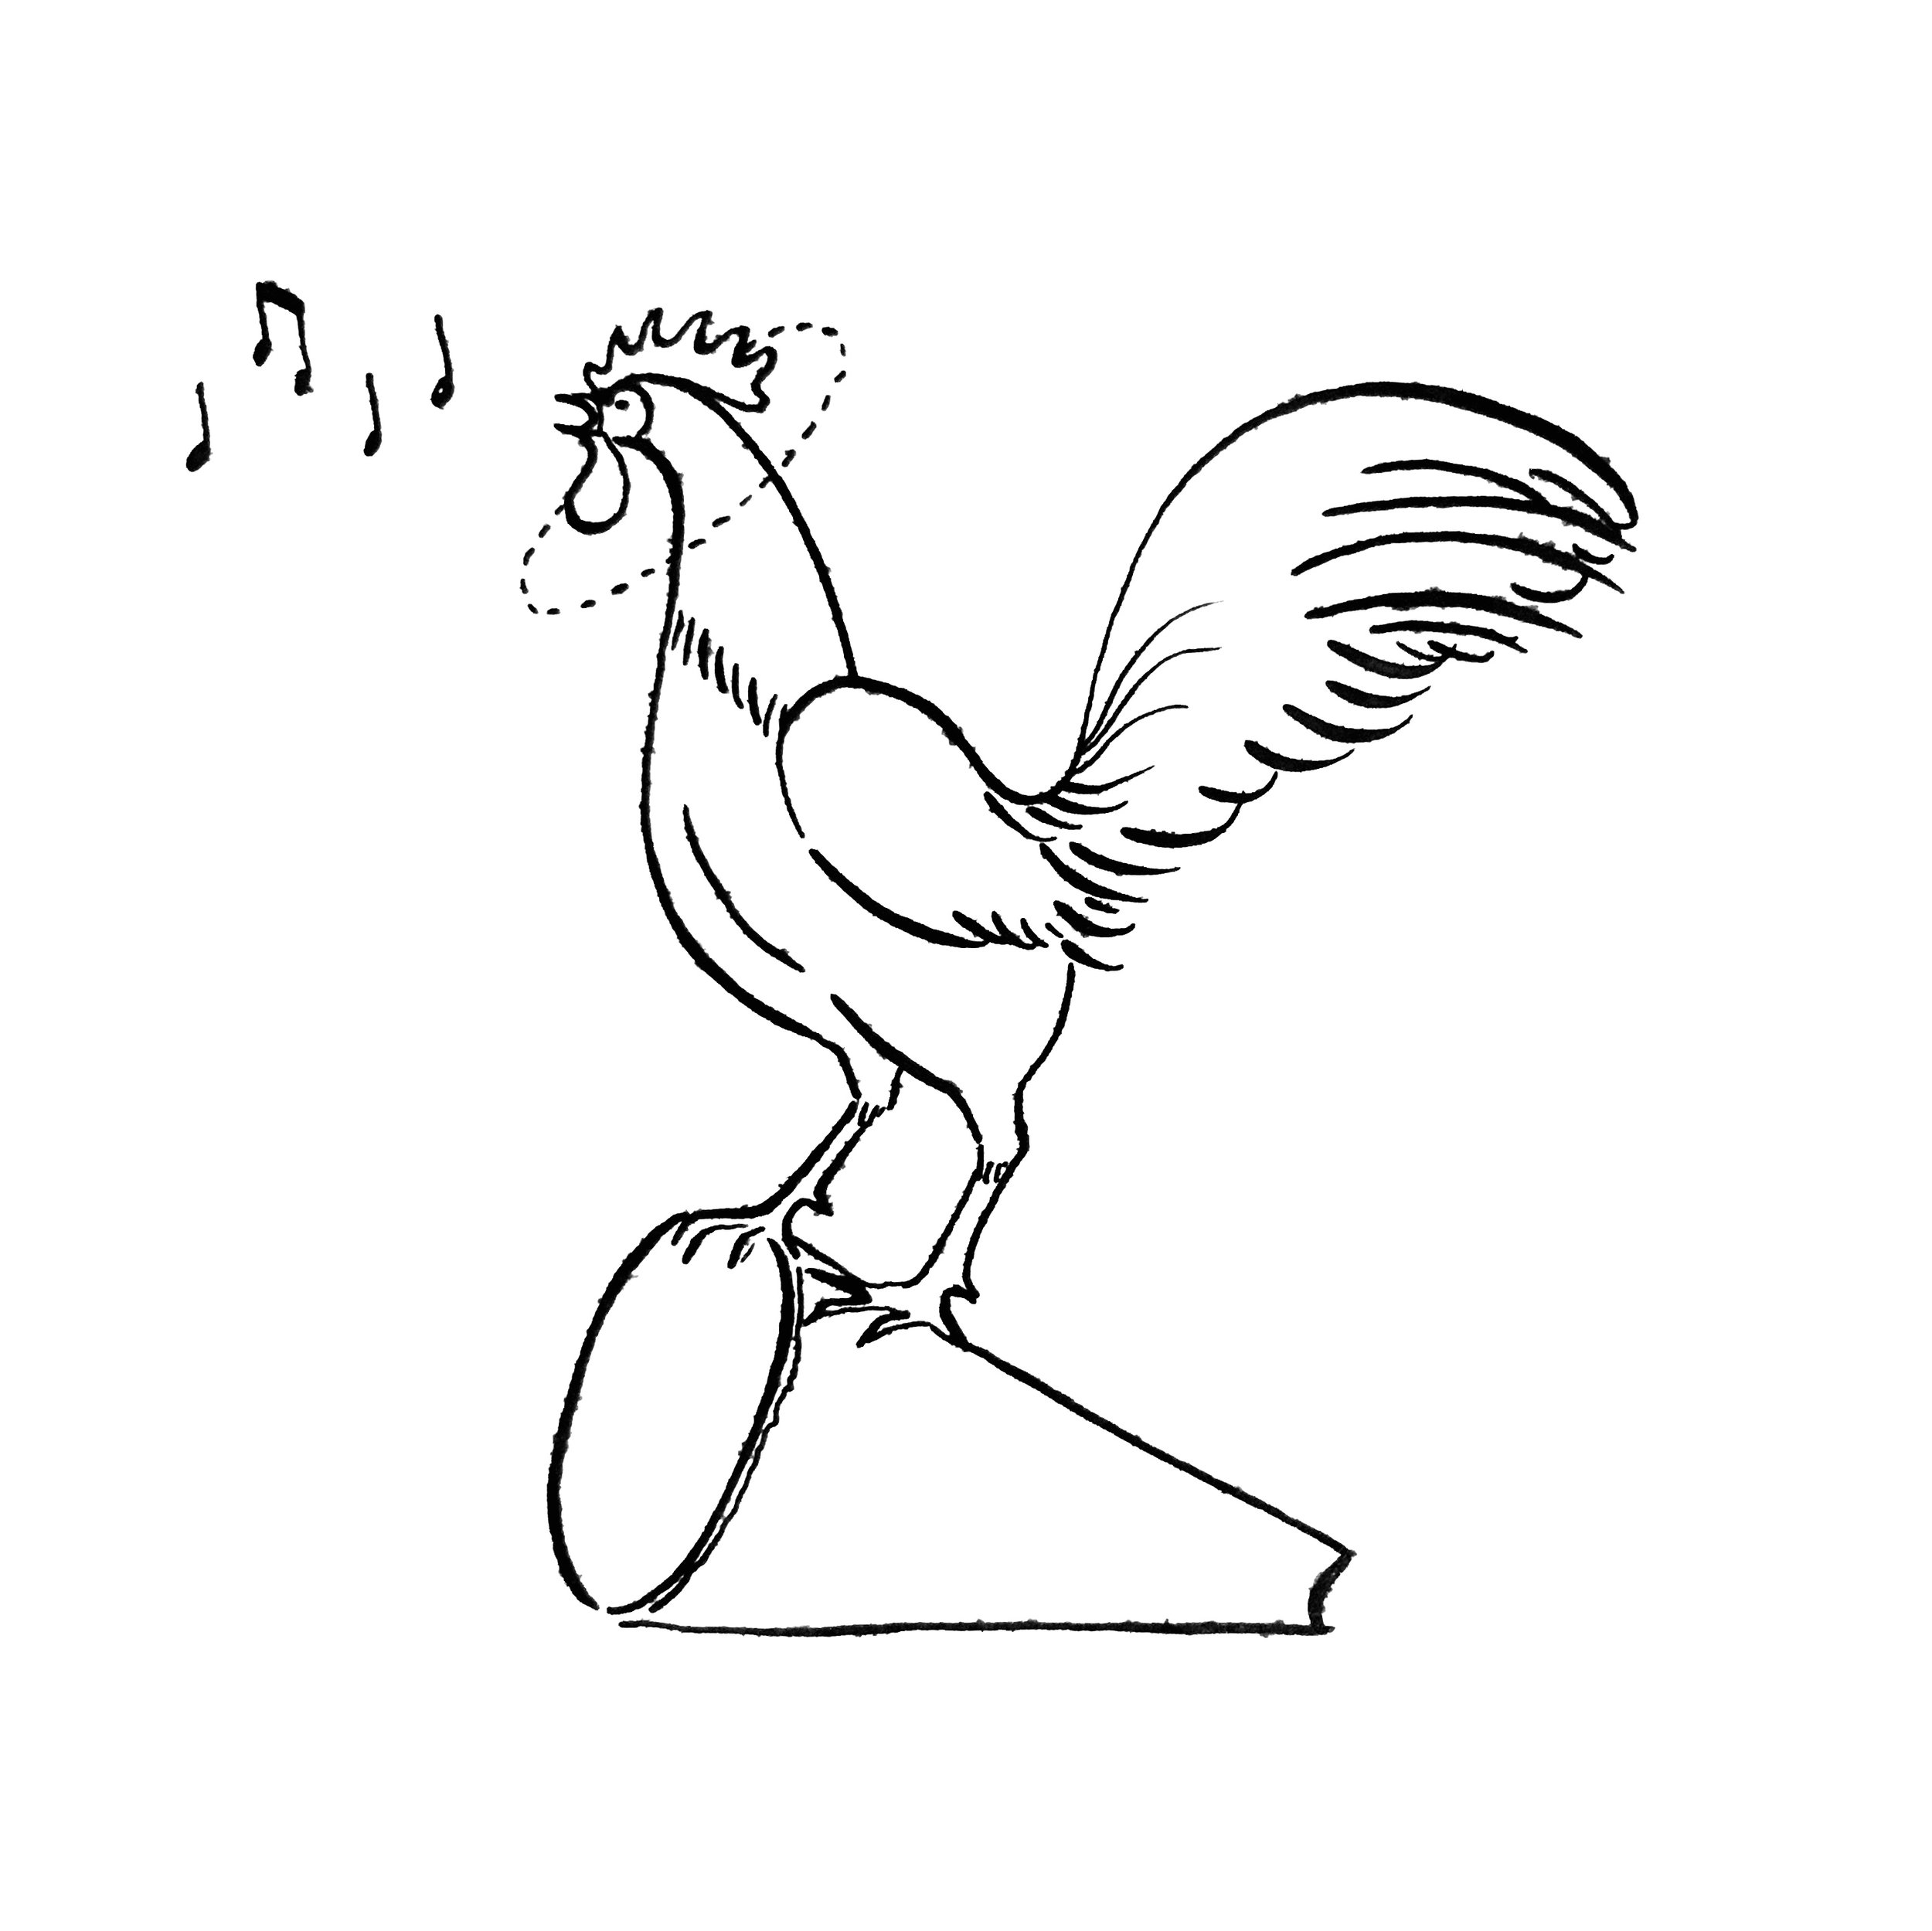 5. faunafatale_rooster.jpg